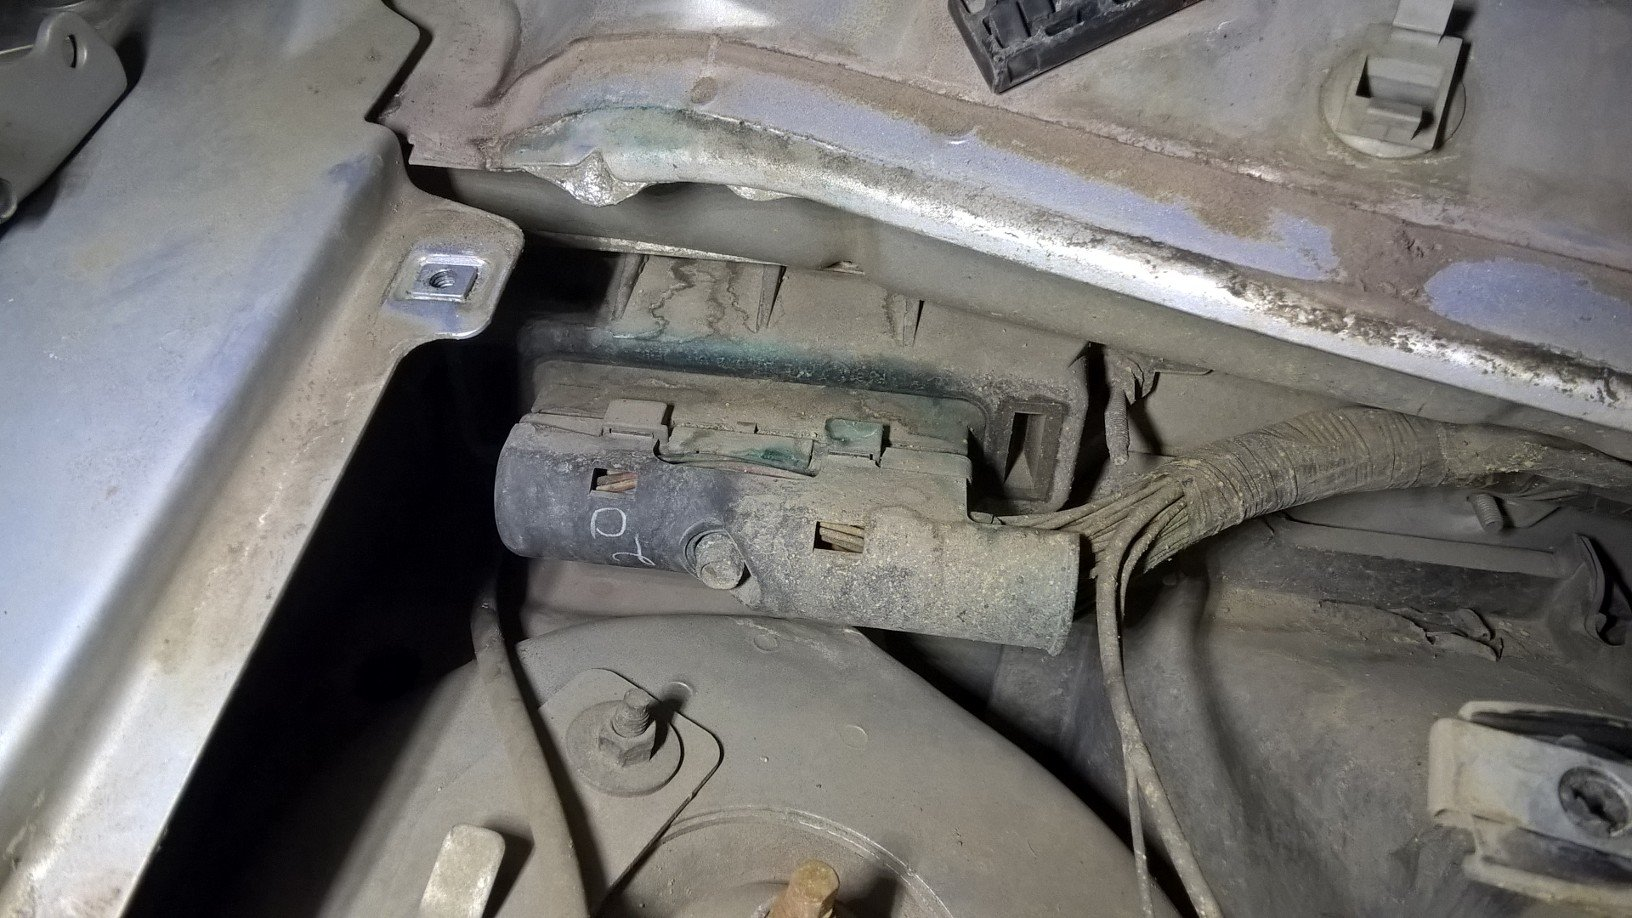 I have Ford Windstar 2002 which starts acting weird  ABS